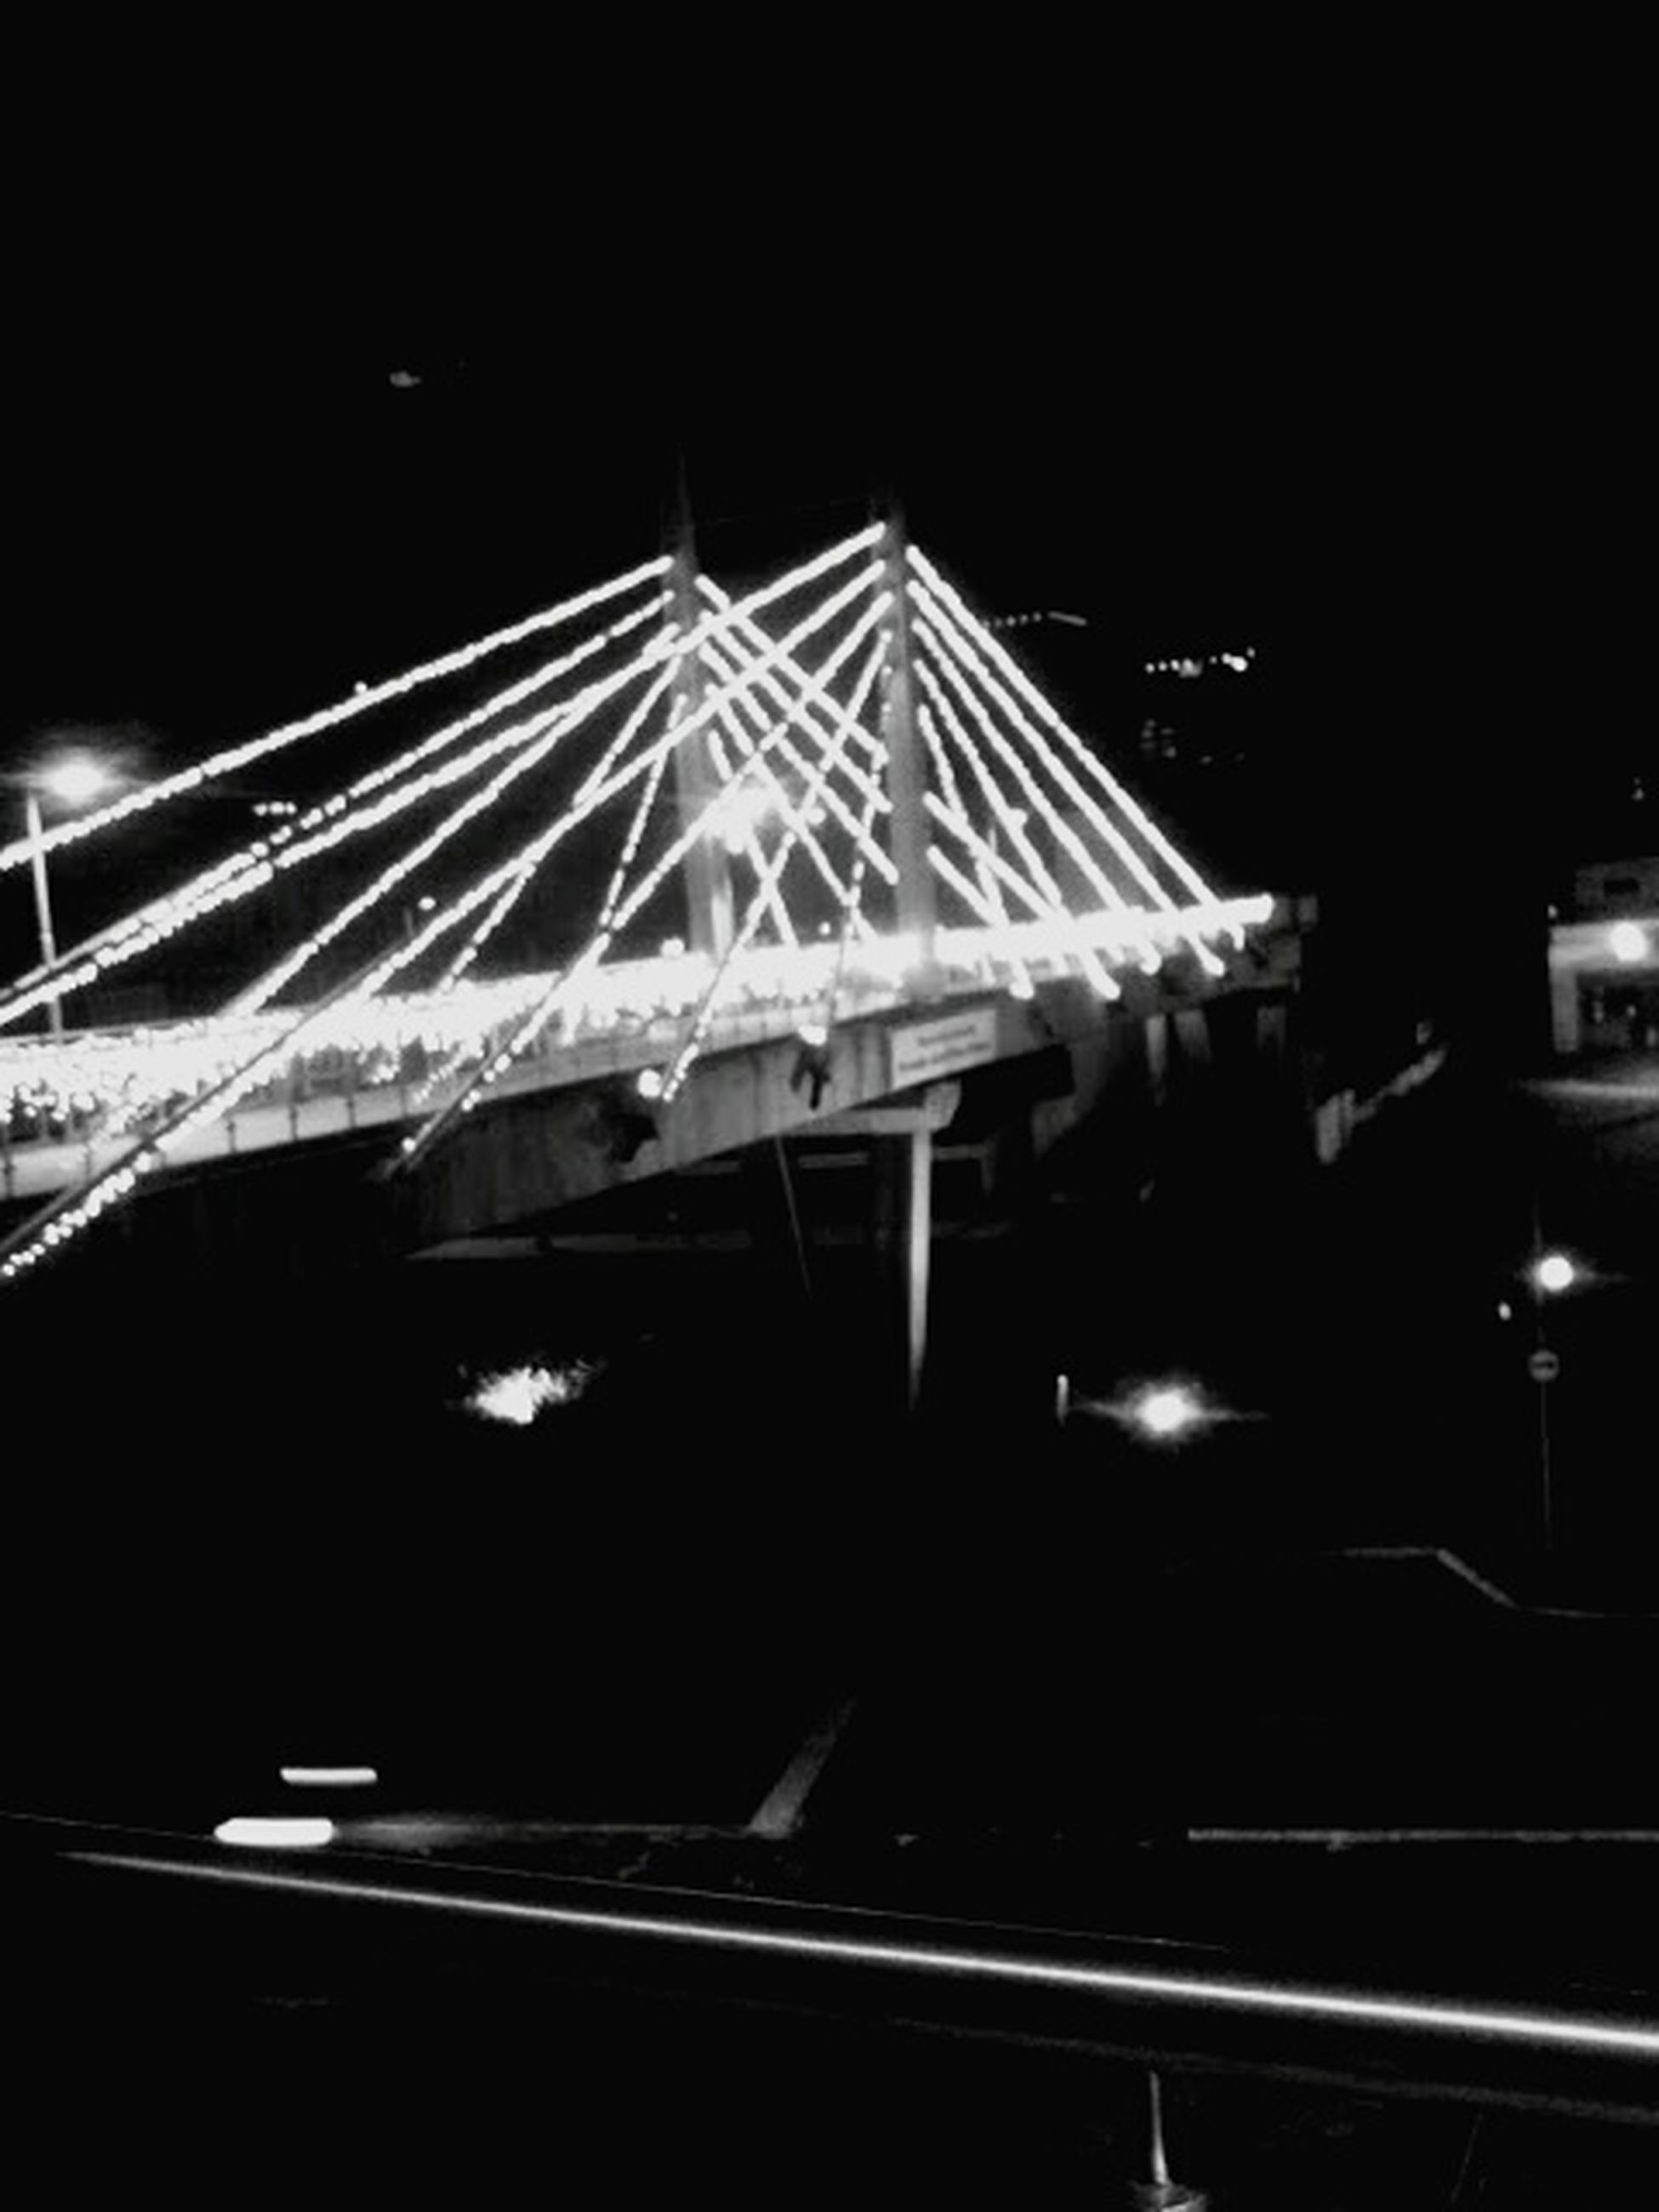 night, illuminated, low angle view, built structure, architecture, connection, metal, transportation, bridge - man made structure, no people, engineering, lighting equipment, railing, outdoors, clear sky, dark, electricity, sky, metallic, light - natural phenomenon